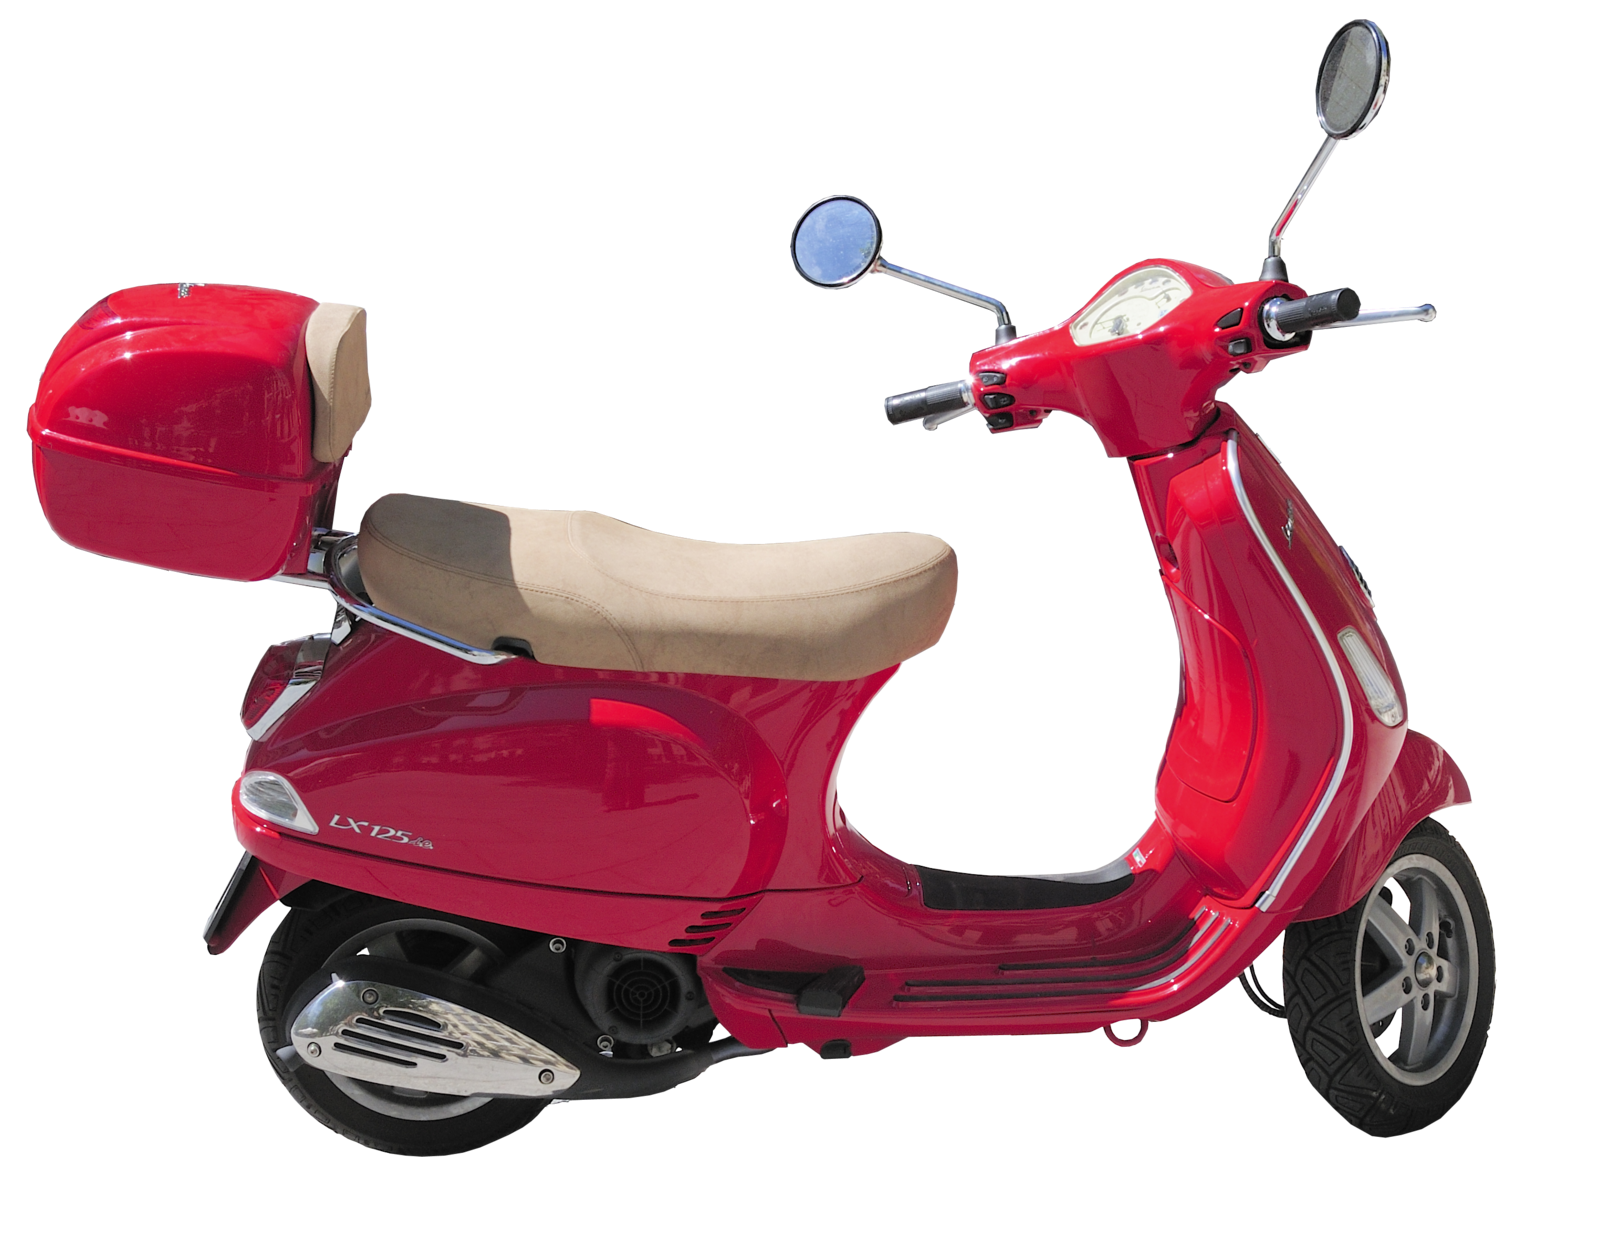 Scooter clipart gym scooter. Vespa png by evelivesey